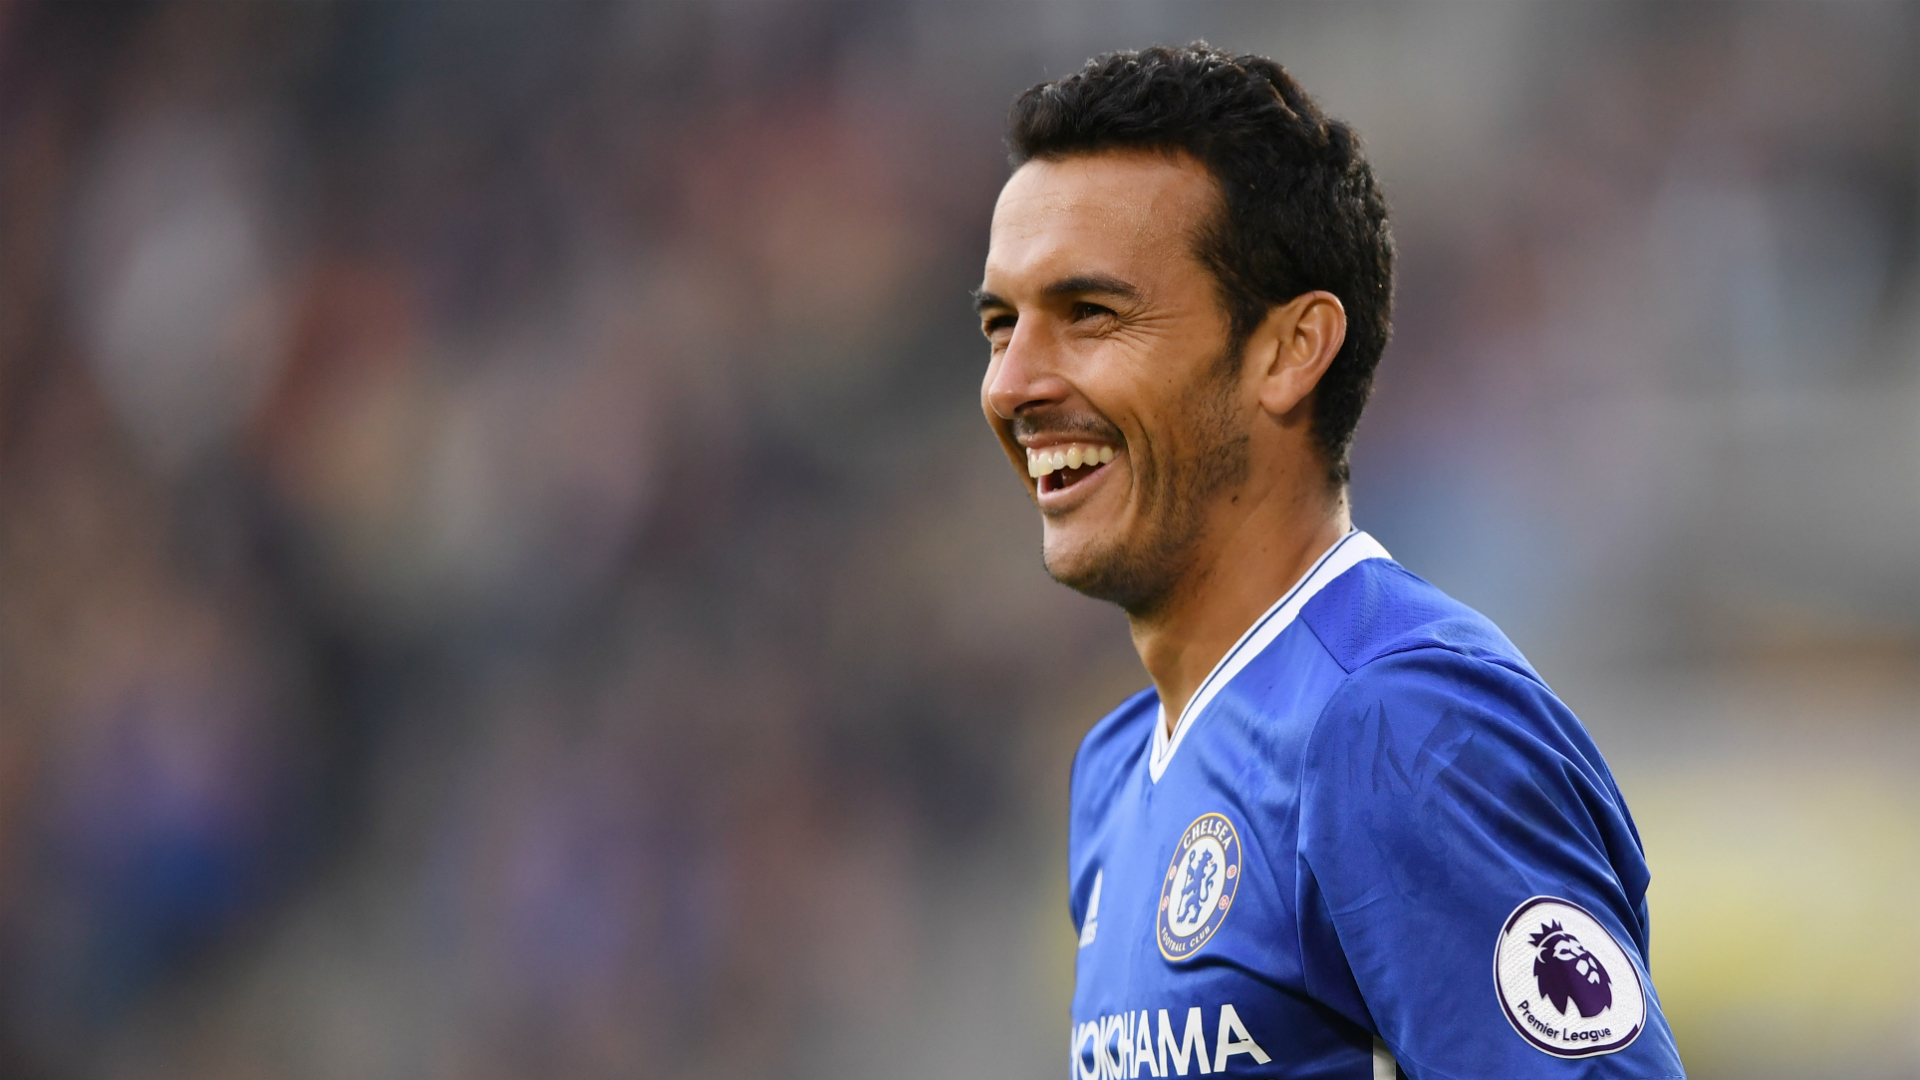 Pedro held summer talks with Barcelona but remains happy at Chelsea